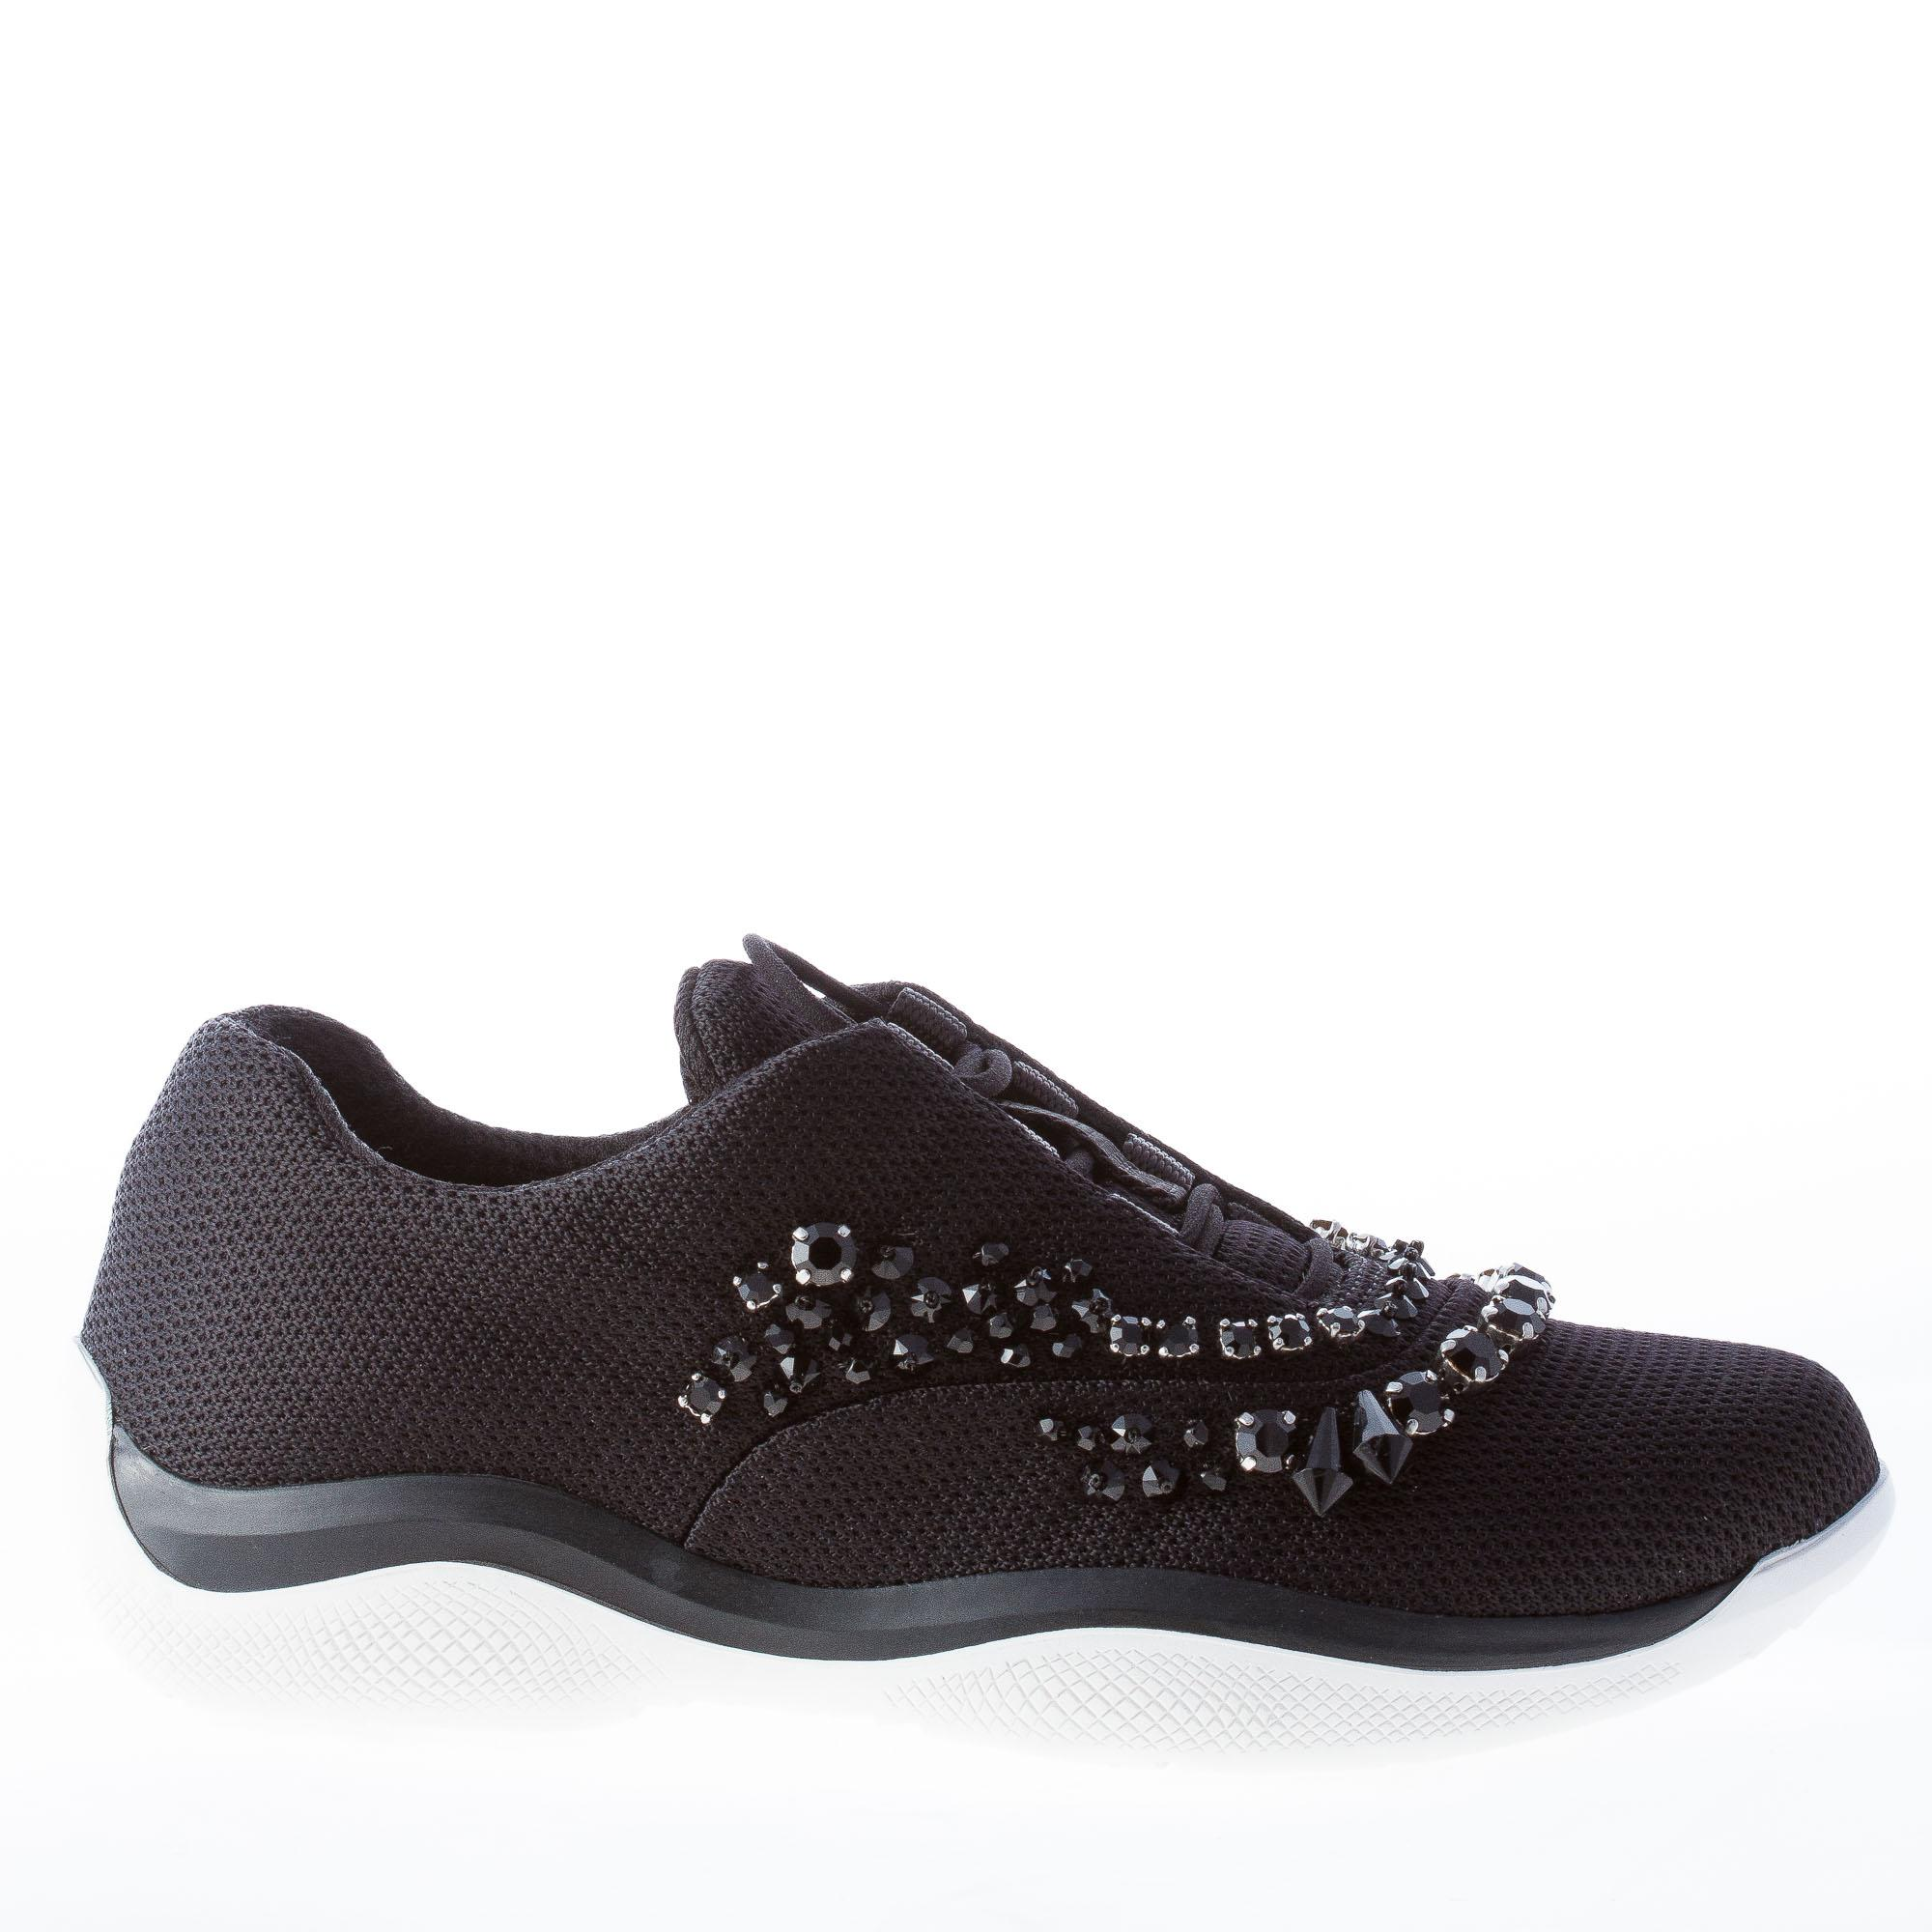 PRADA women shoes America's with Cup schwarz nylon sneaker with America's crystals and beads b00d23